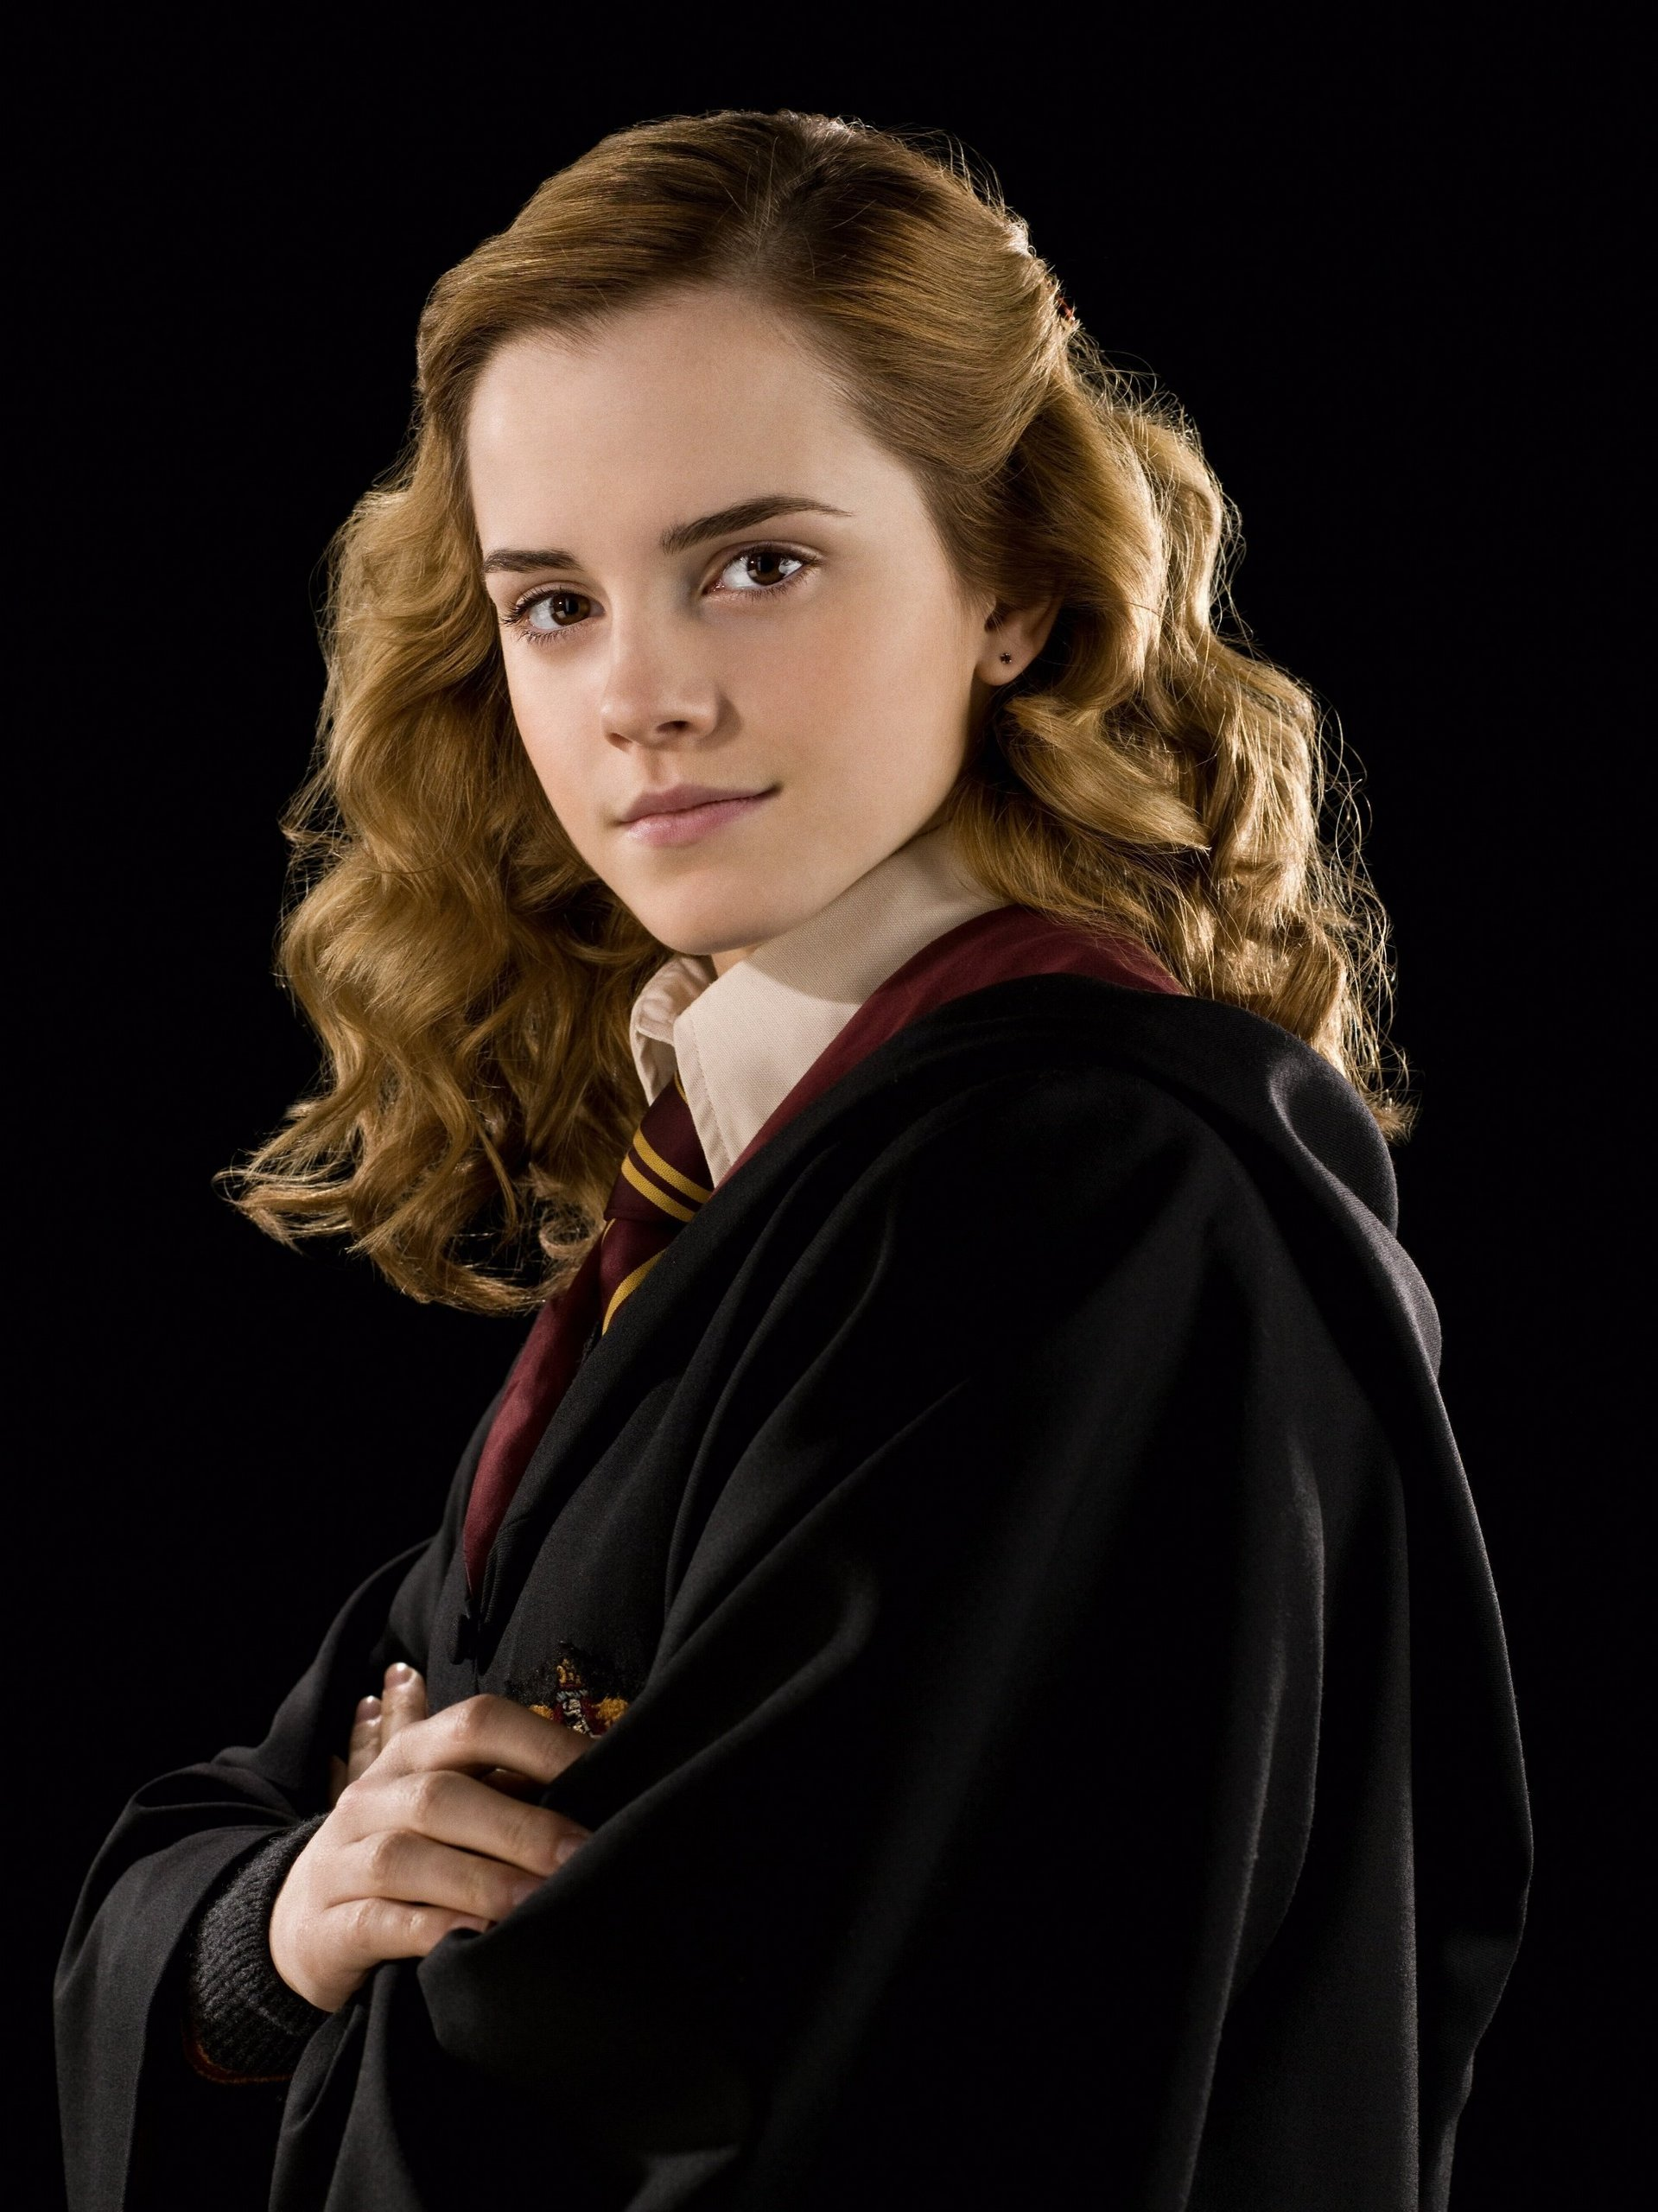 Hermione hbp hermione granger photo 16048675 fanpop - Harry potter hermione granger real name ...